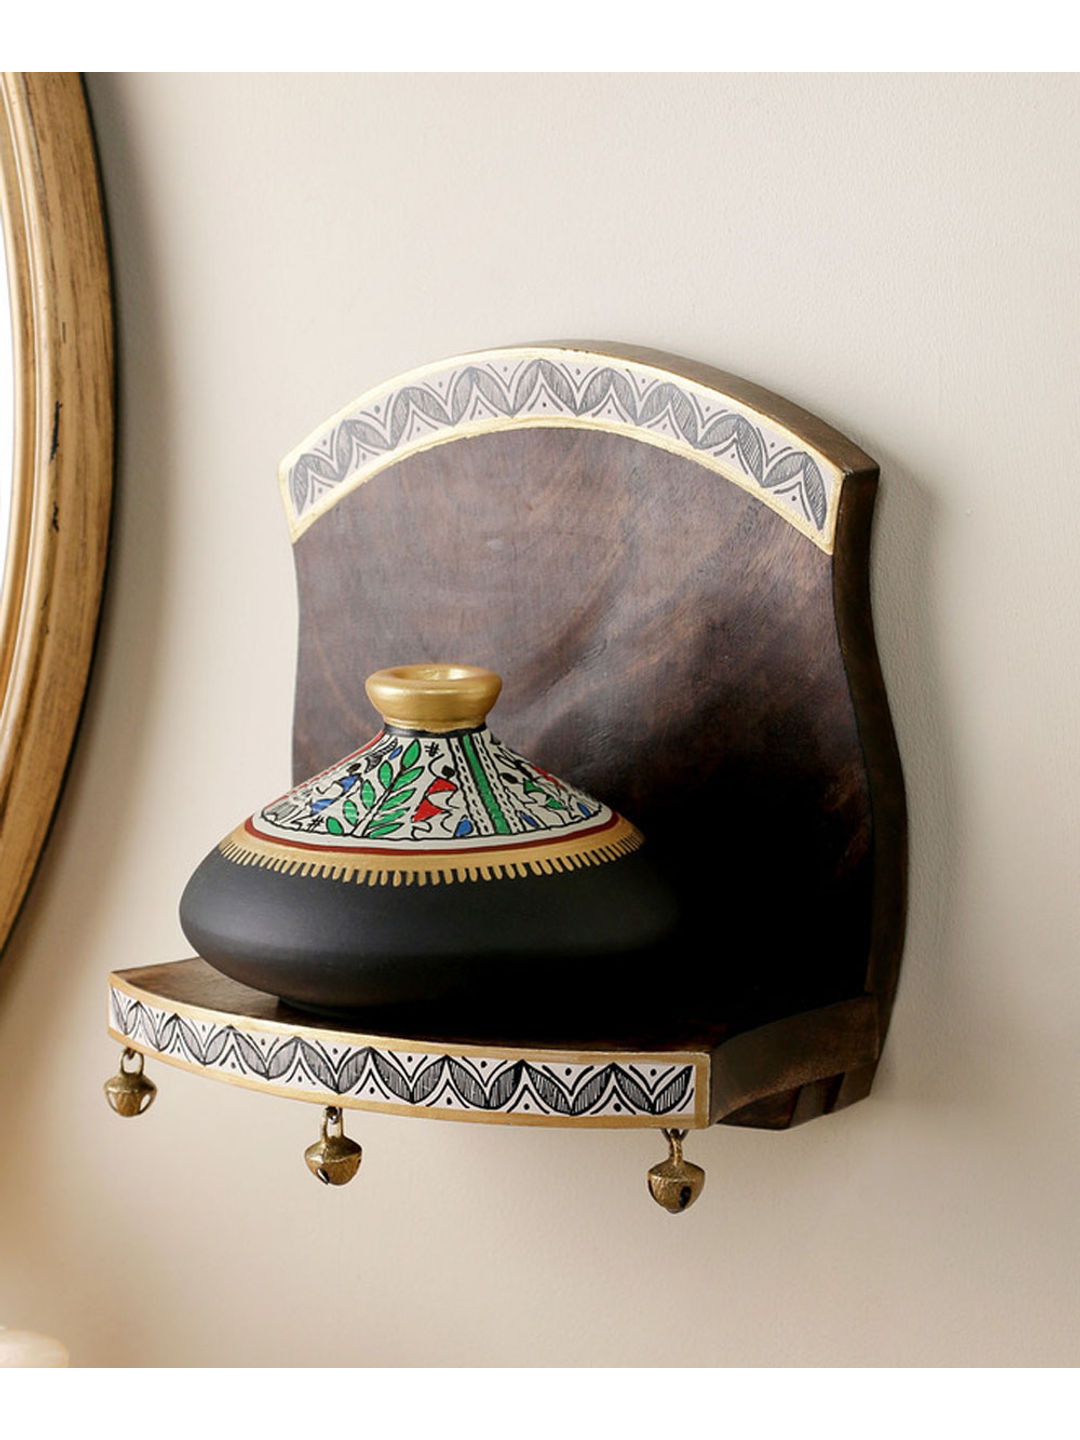 Hand painted wall shelf with black pot